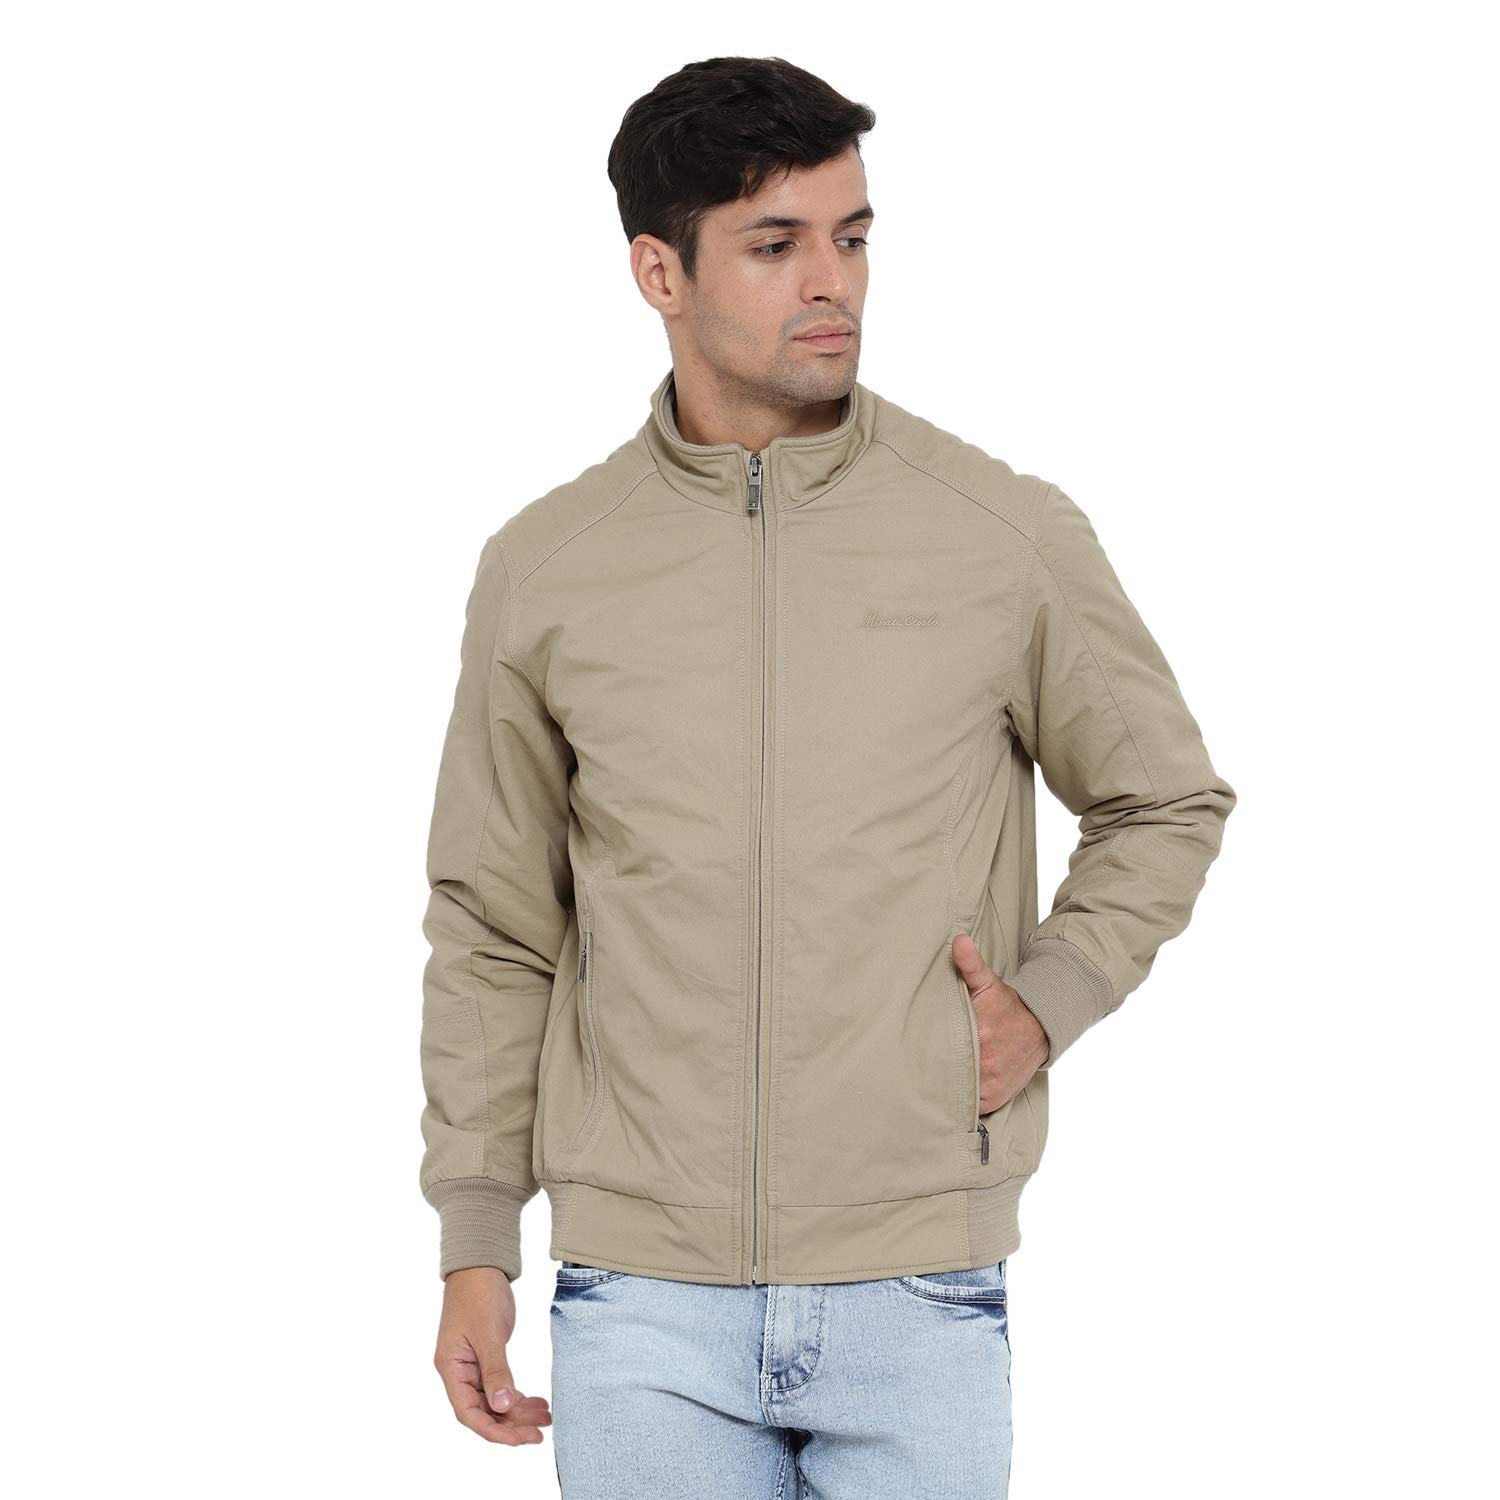 Monte Carlo Peach Solid Cotton Polo Collar Jackets